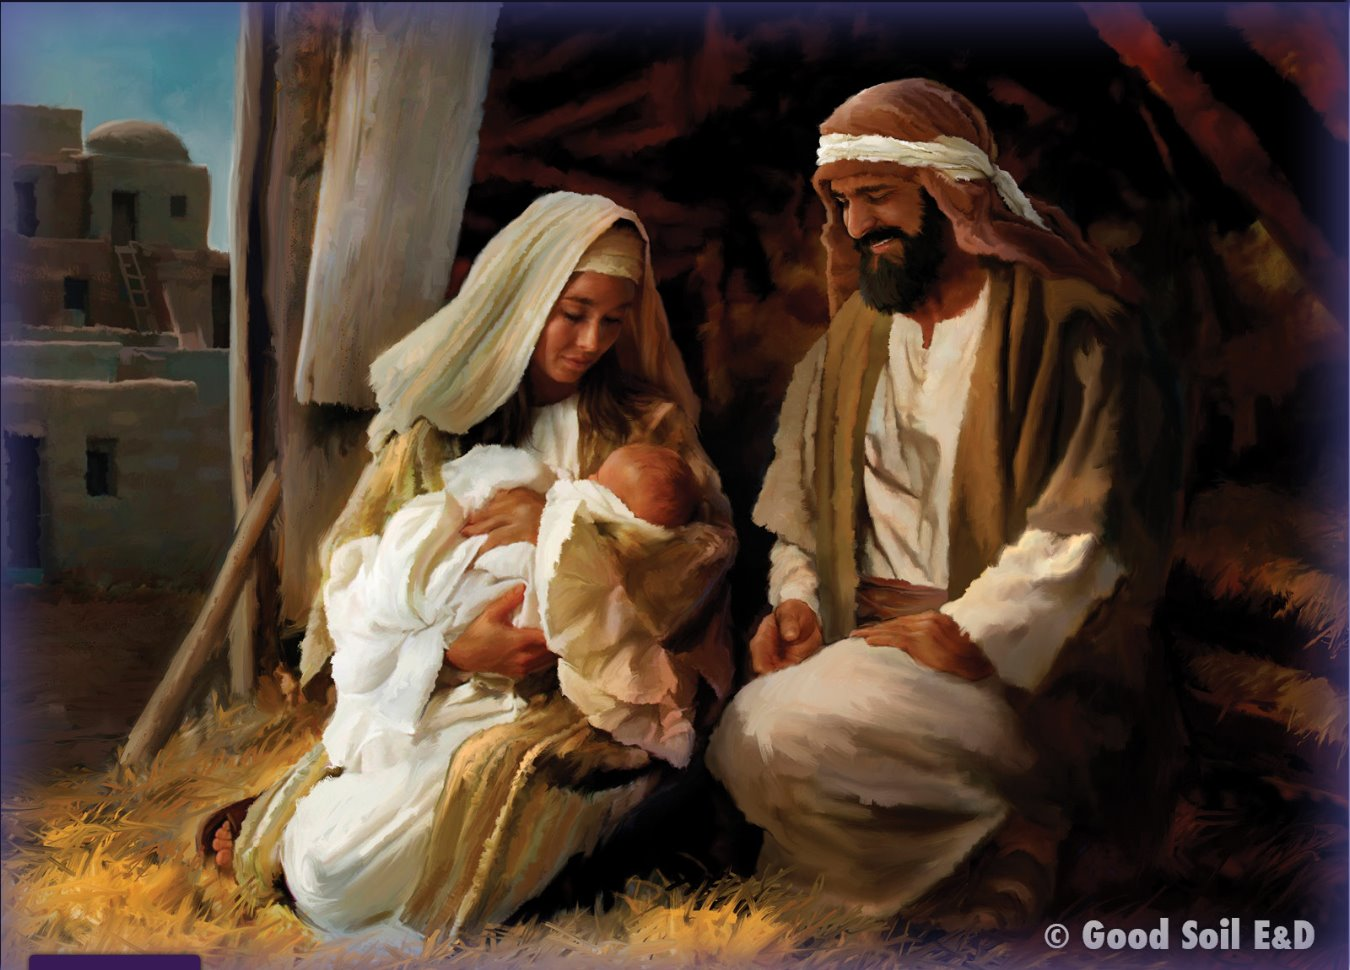 Birth of Jesus of Nazareth